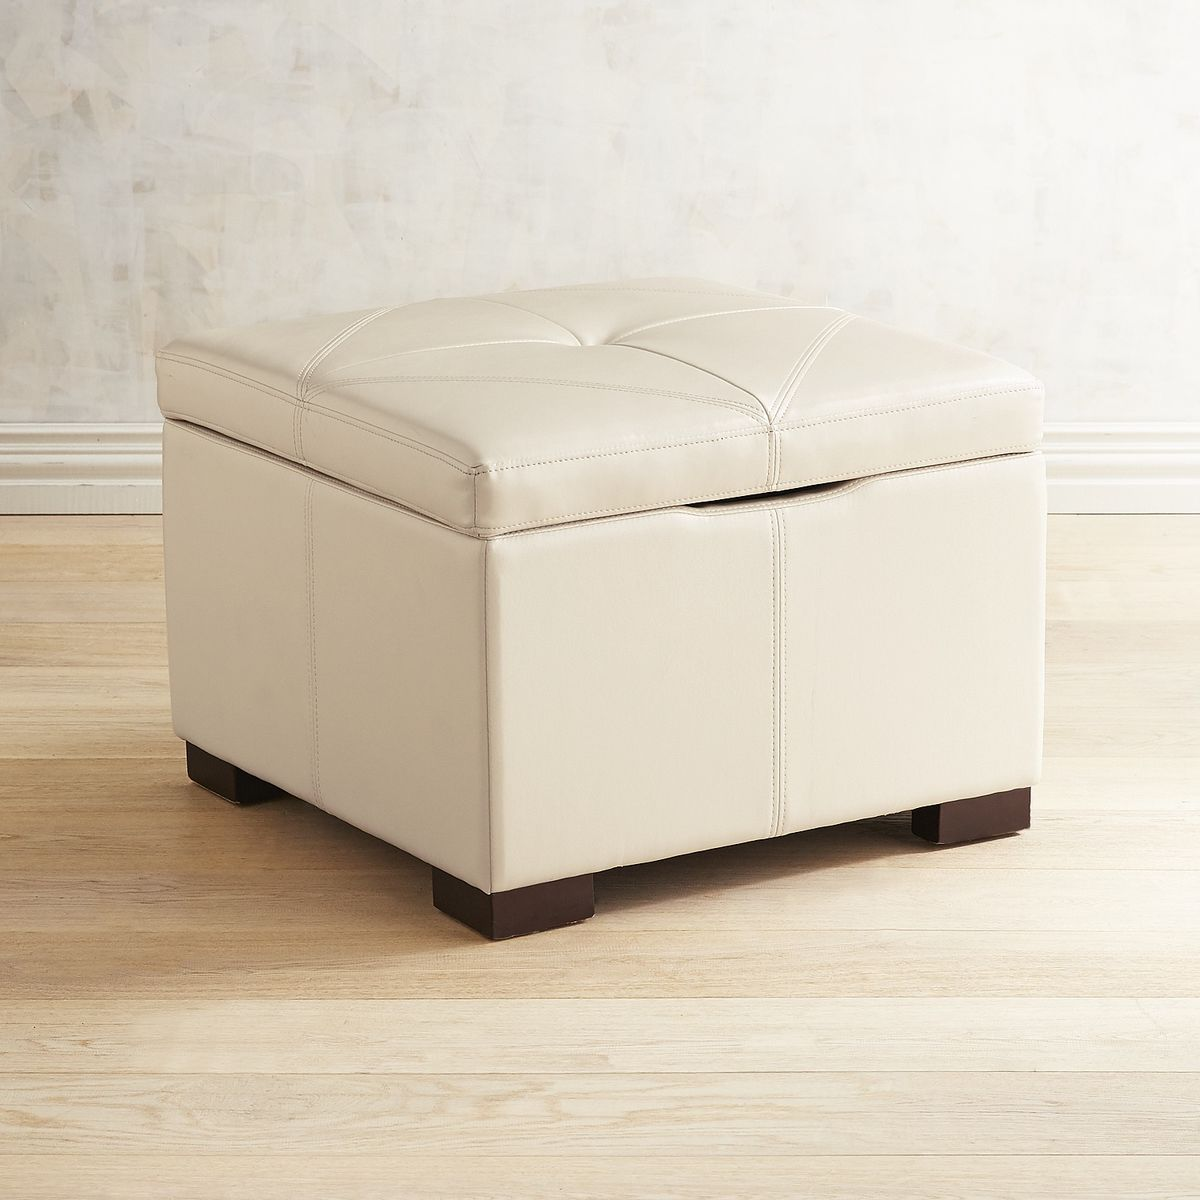 reviews of stylish storage benches and